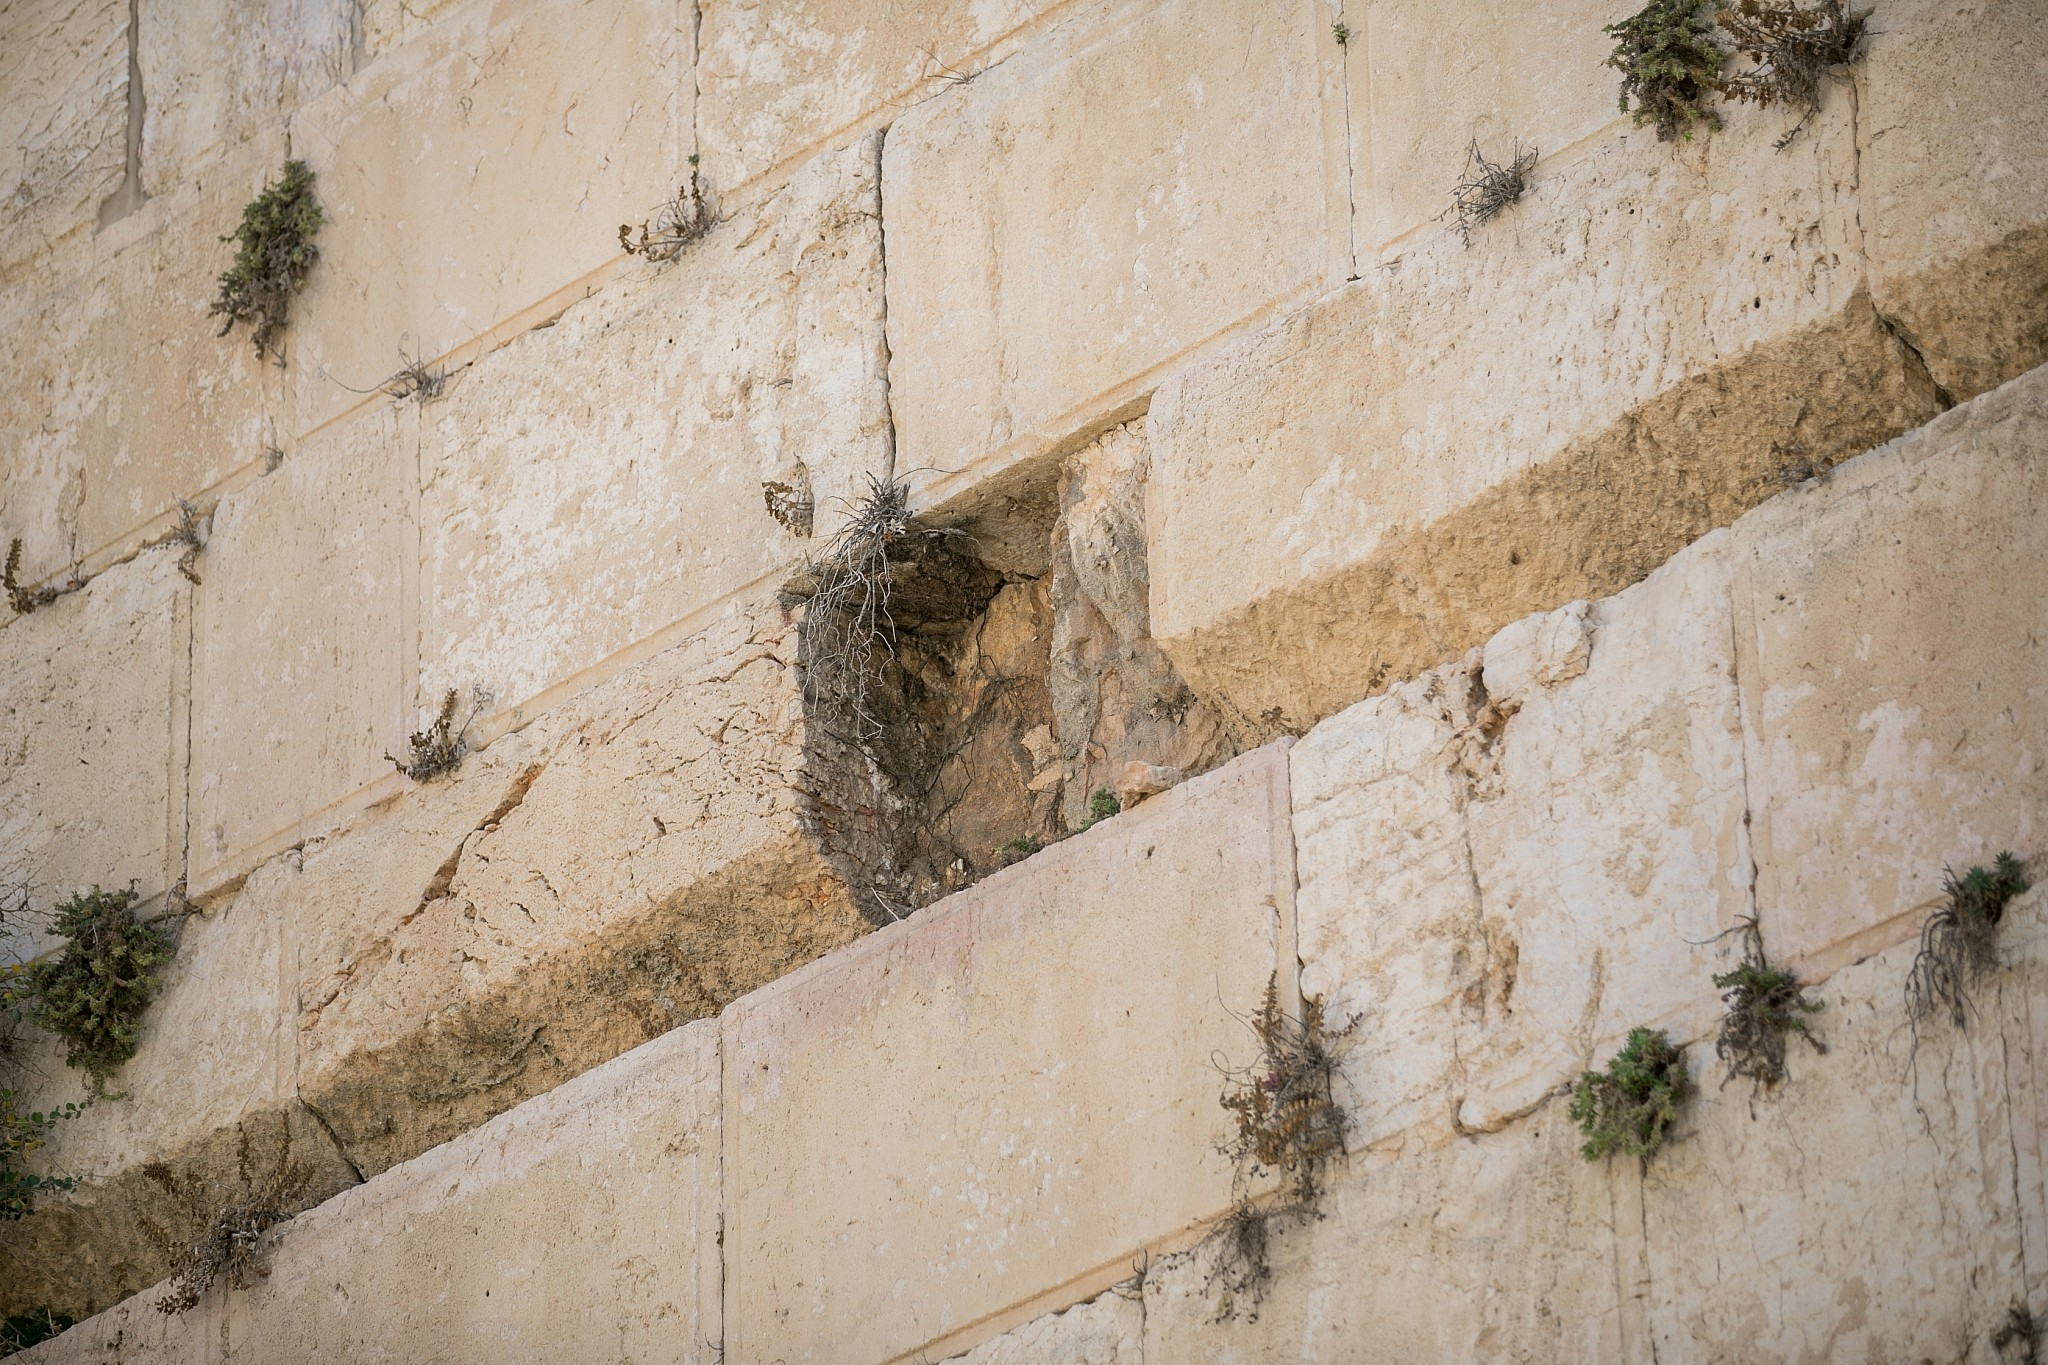 View Of The Site Where A Large Chunk Stone Dislodged From Western Wall In